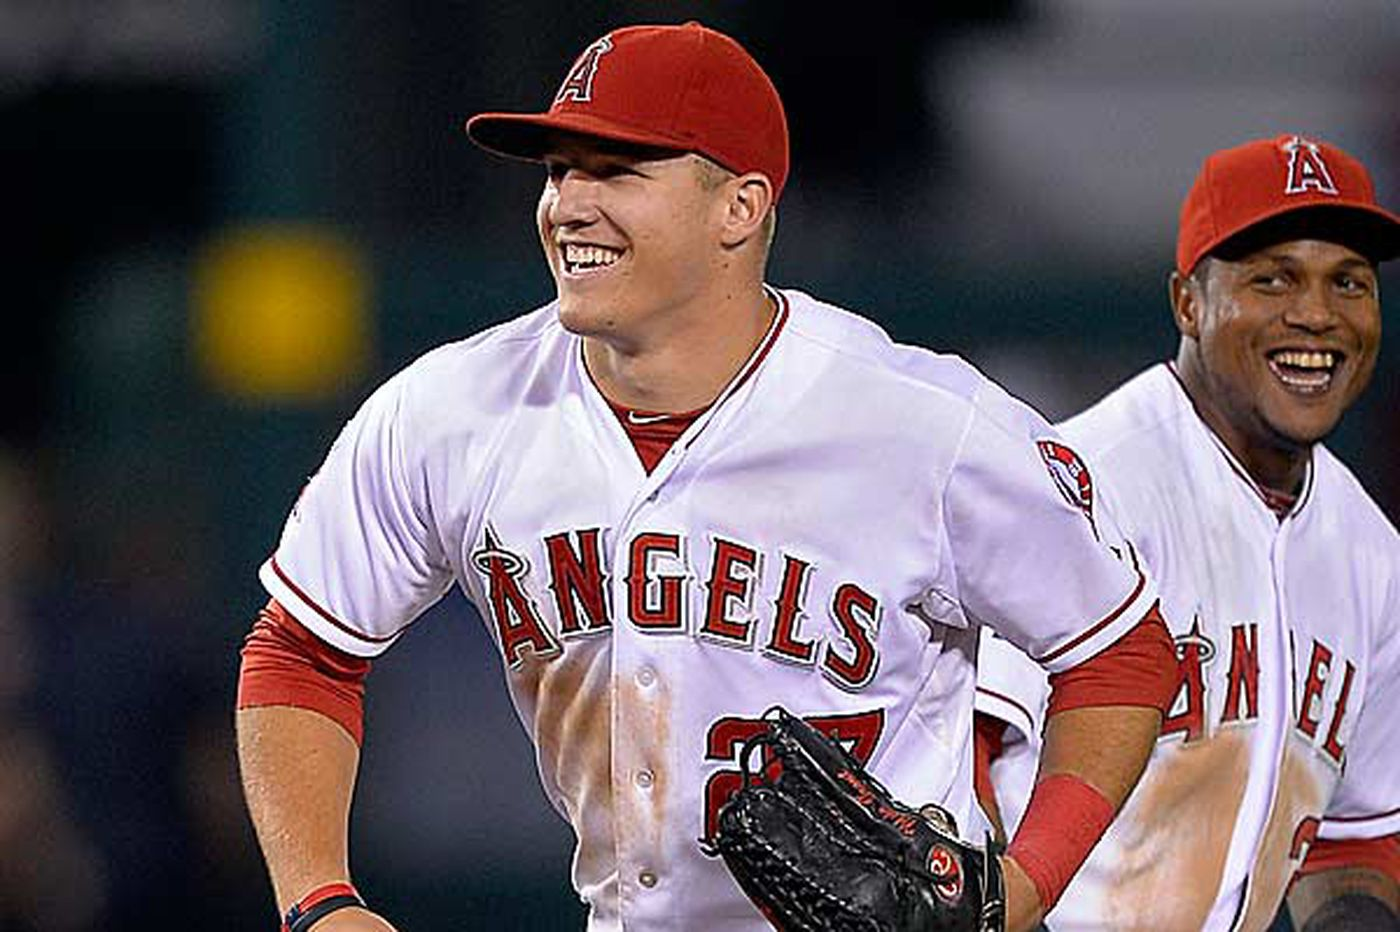 South Jersey native Mike Trout wins 2012 Daily News Sportsperson of the Year award